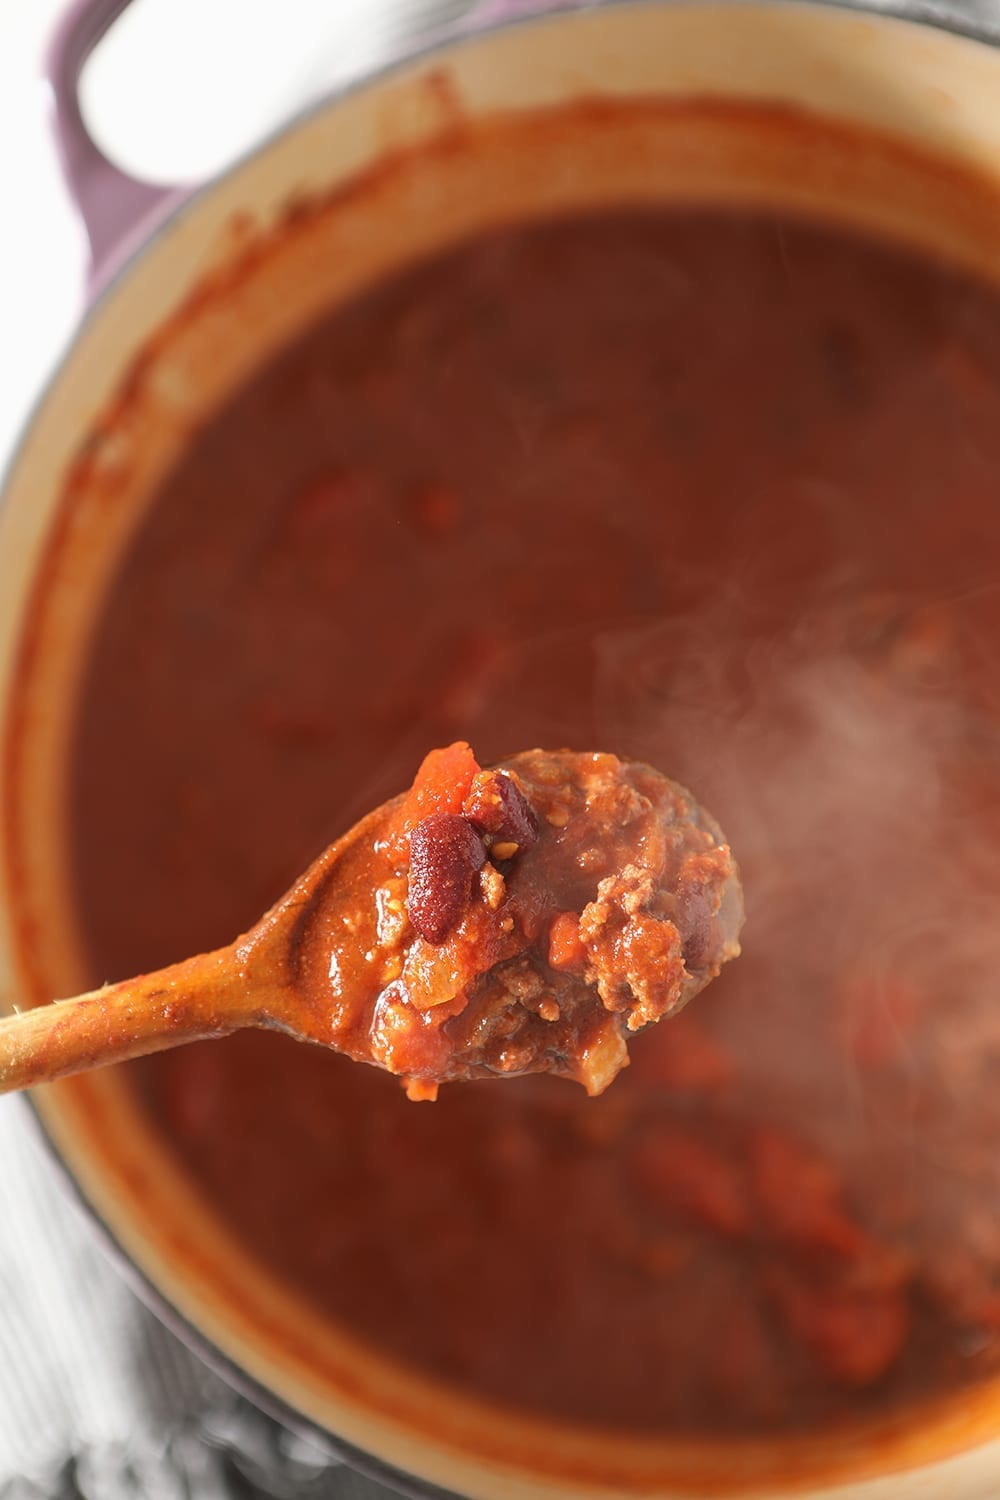 A wooden spoon lifts Beer Chili out of the Dutch oven, from above